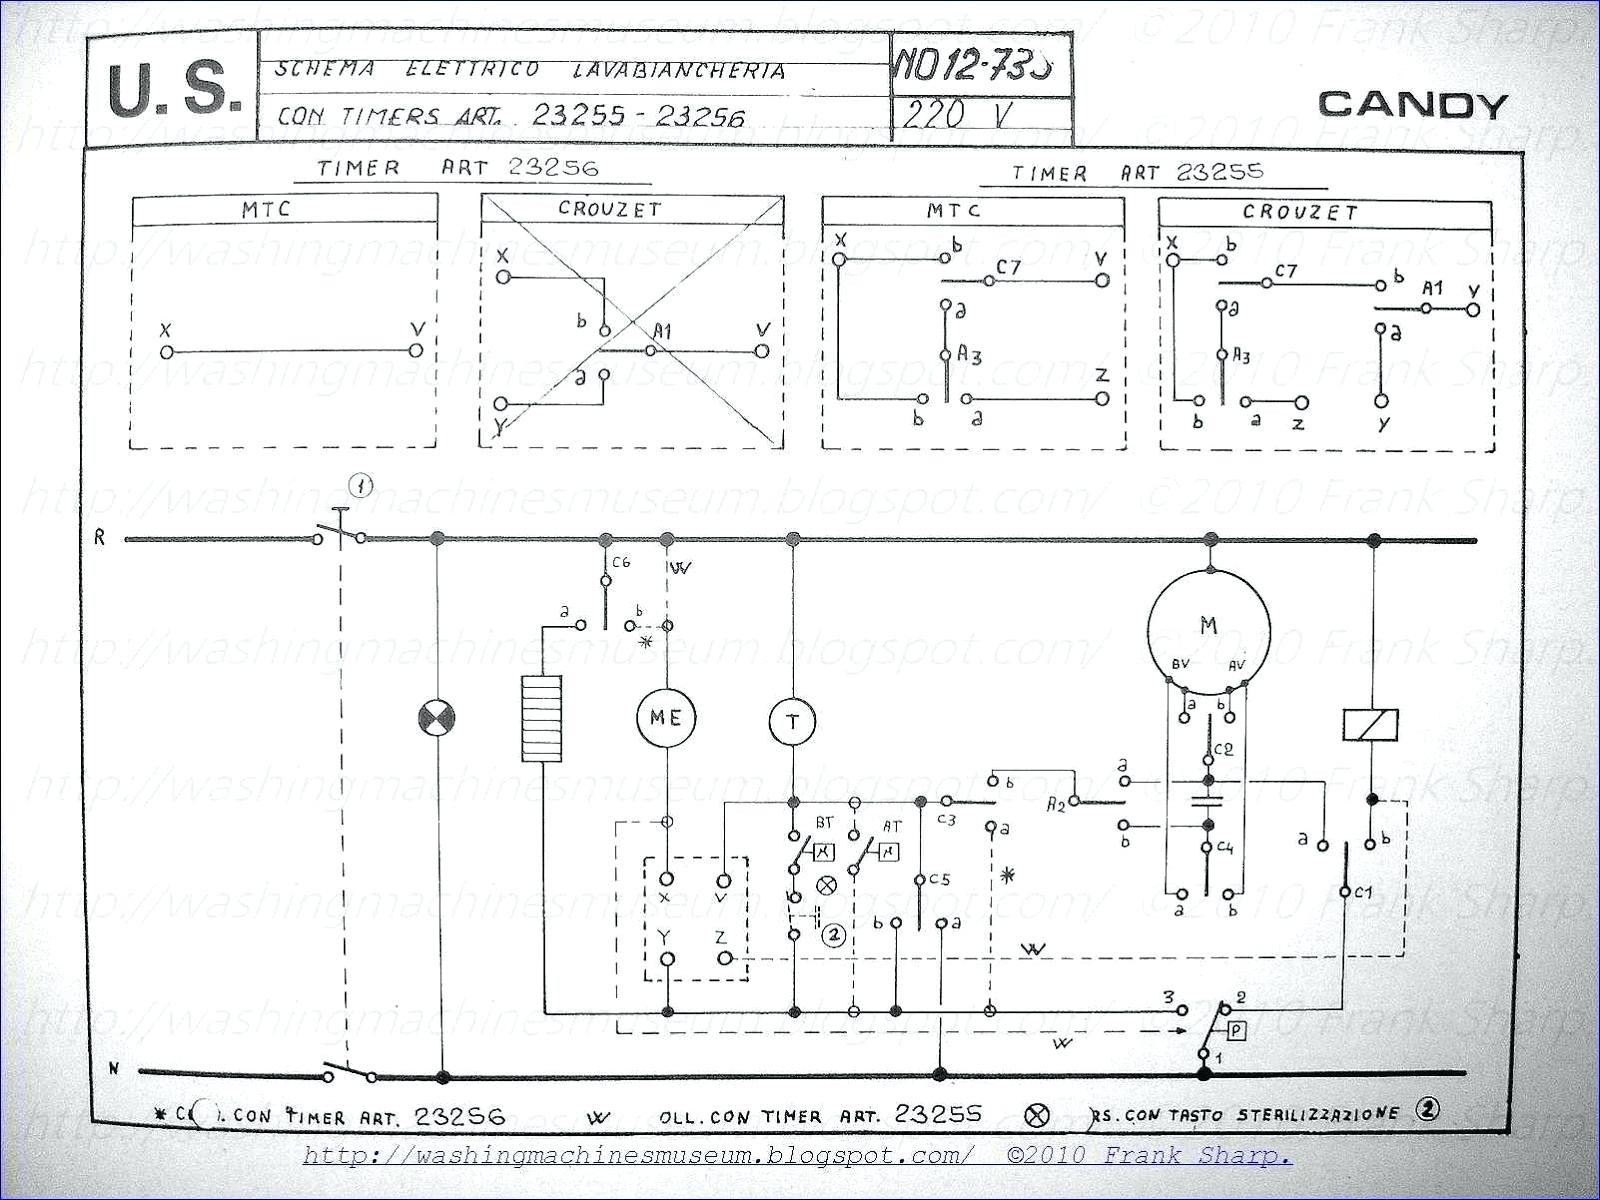 hotpoint dryer timer wiring diagram sample whirlpool dryer electrical schematic